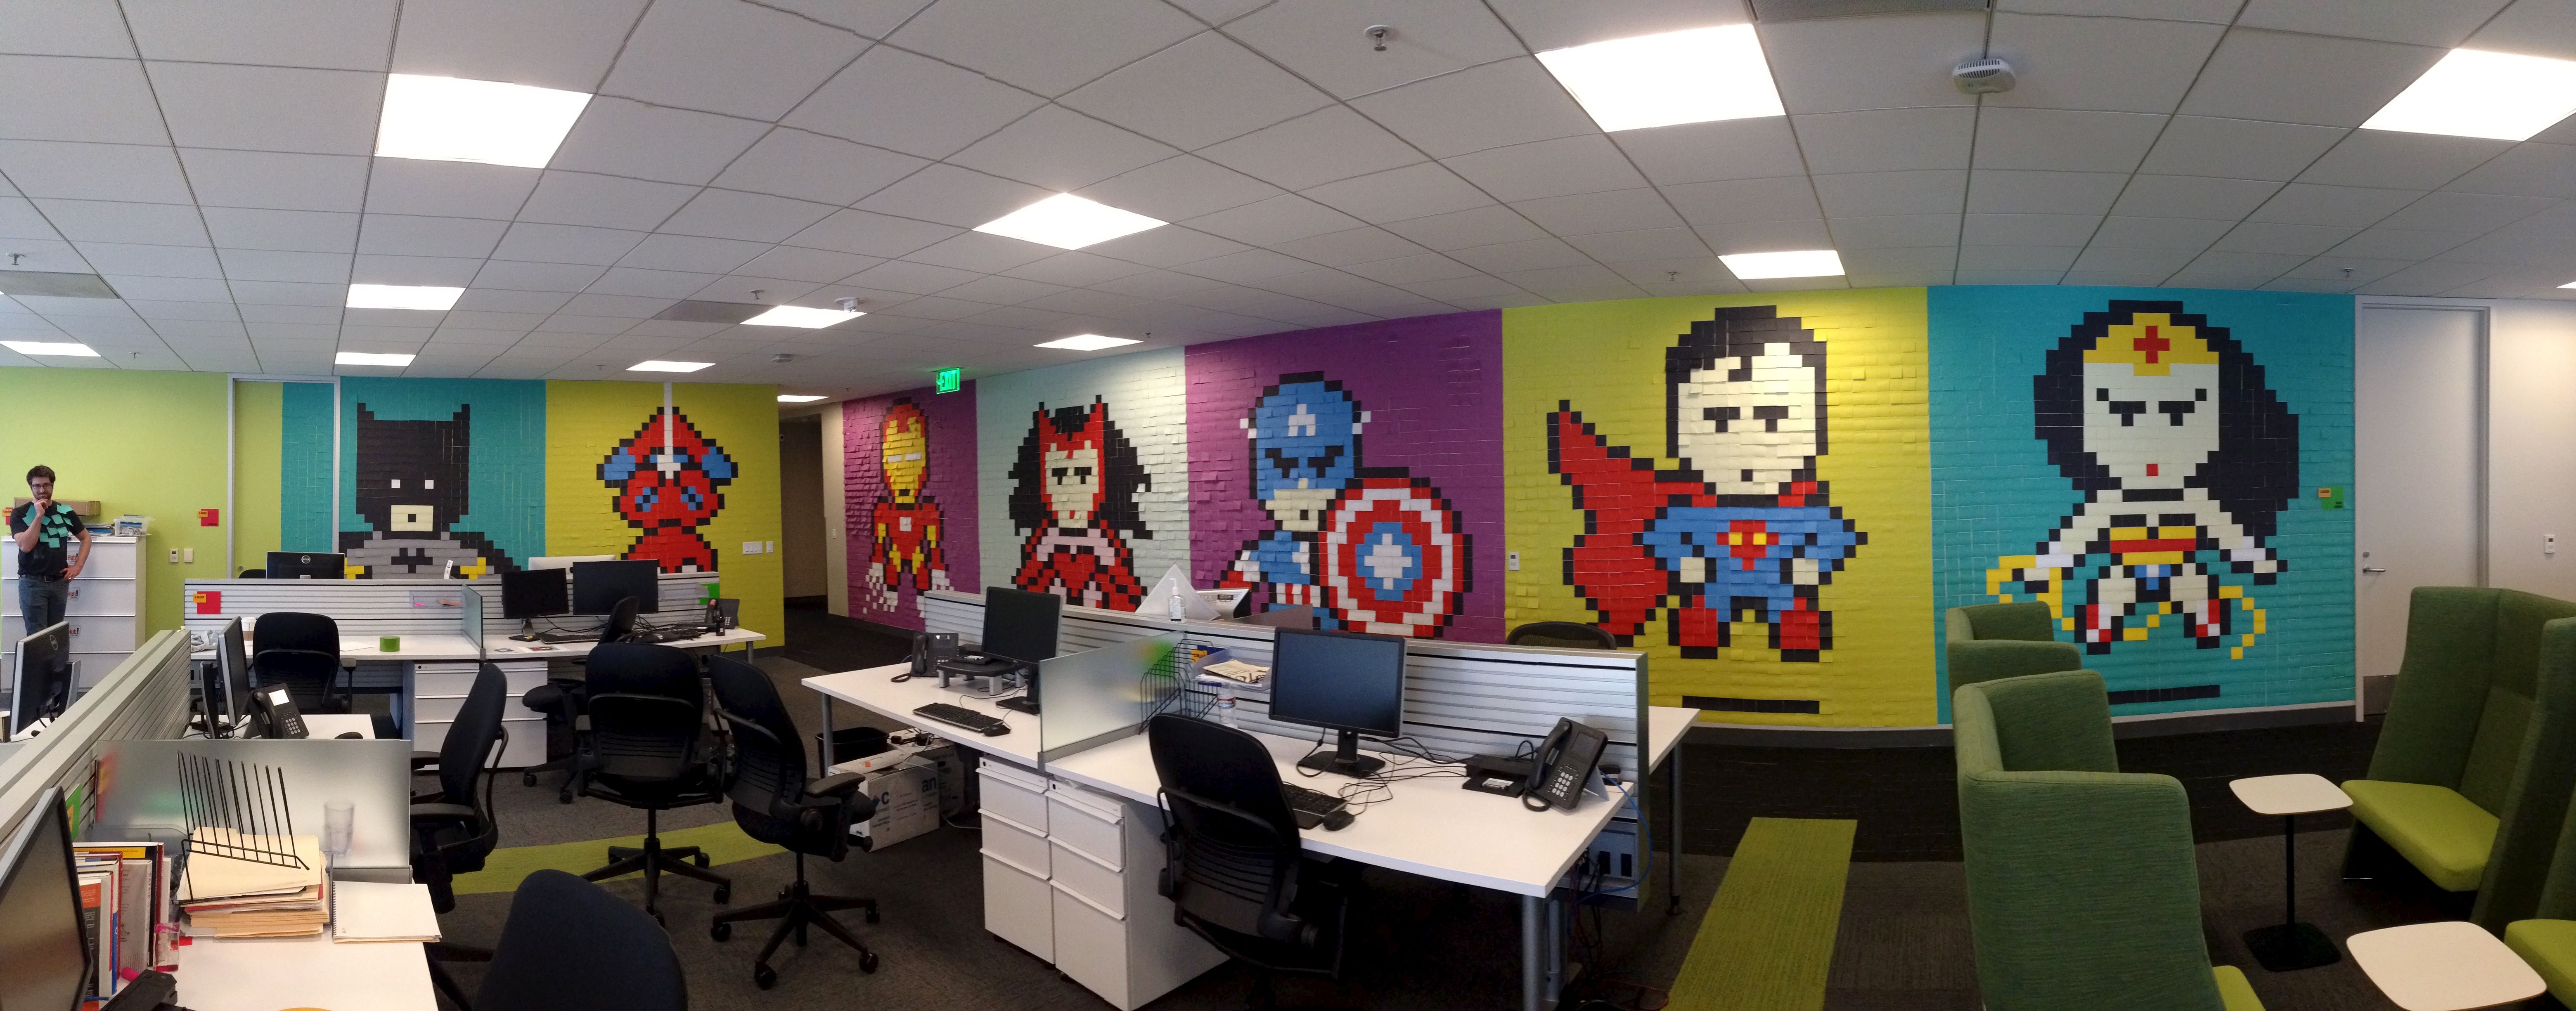 I Got Bored With The Drab Walls At My Office So I Decided To Spruce Them Up A Bit Post It Art Office Mural Mural